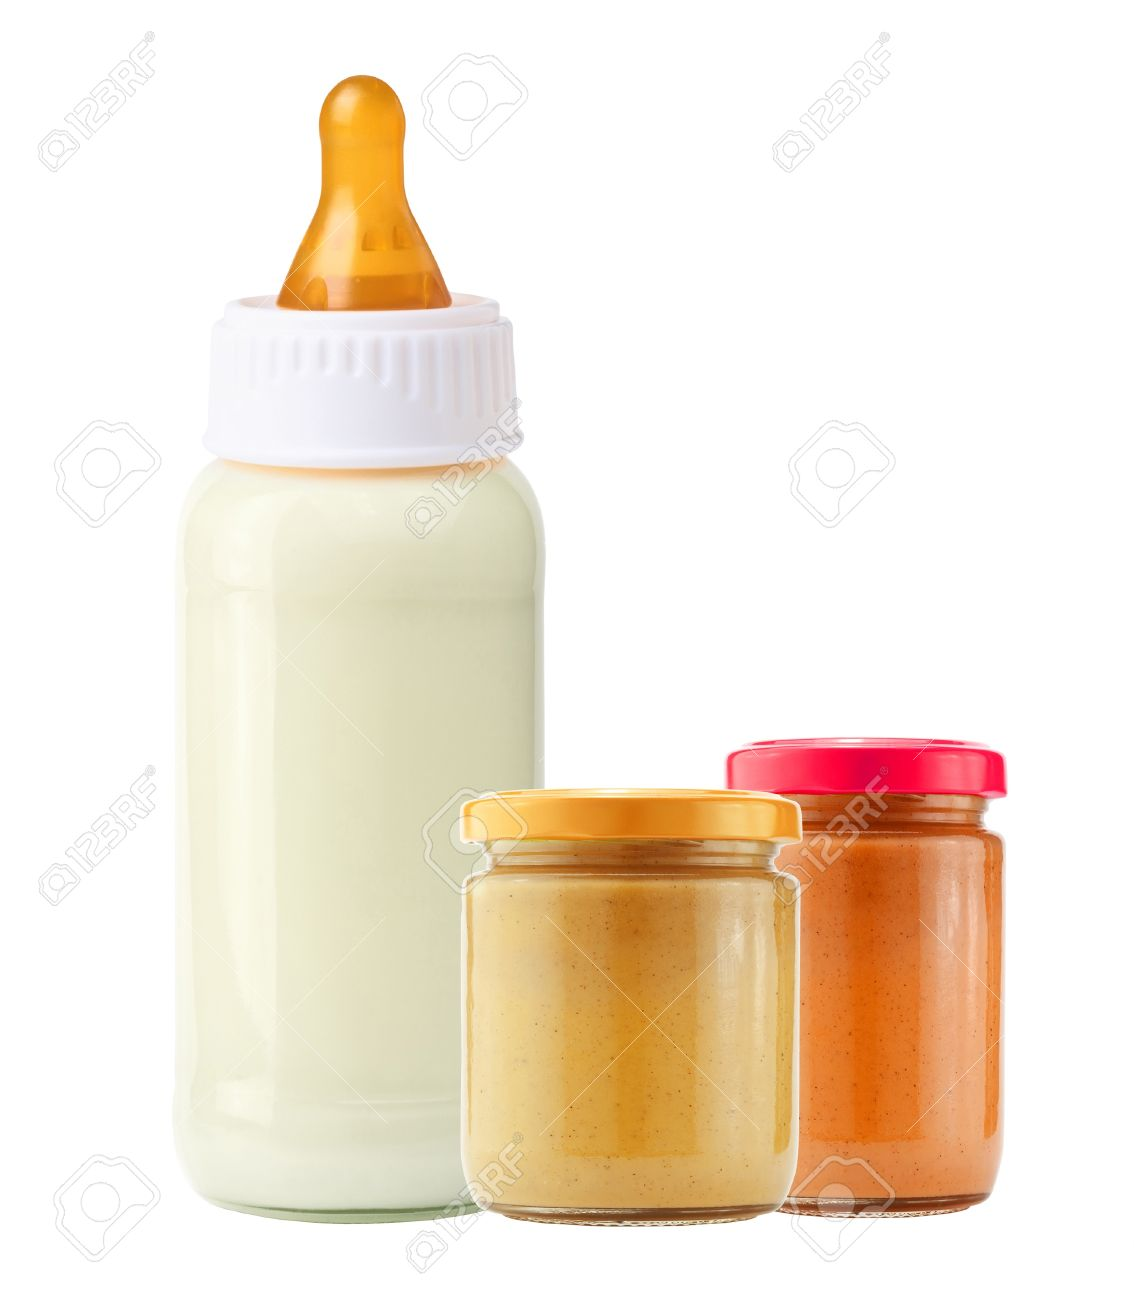 baby food and and milk bottle isolated on white background Stock Photo - 15898791